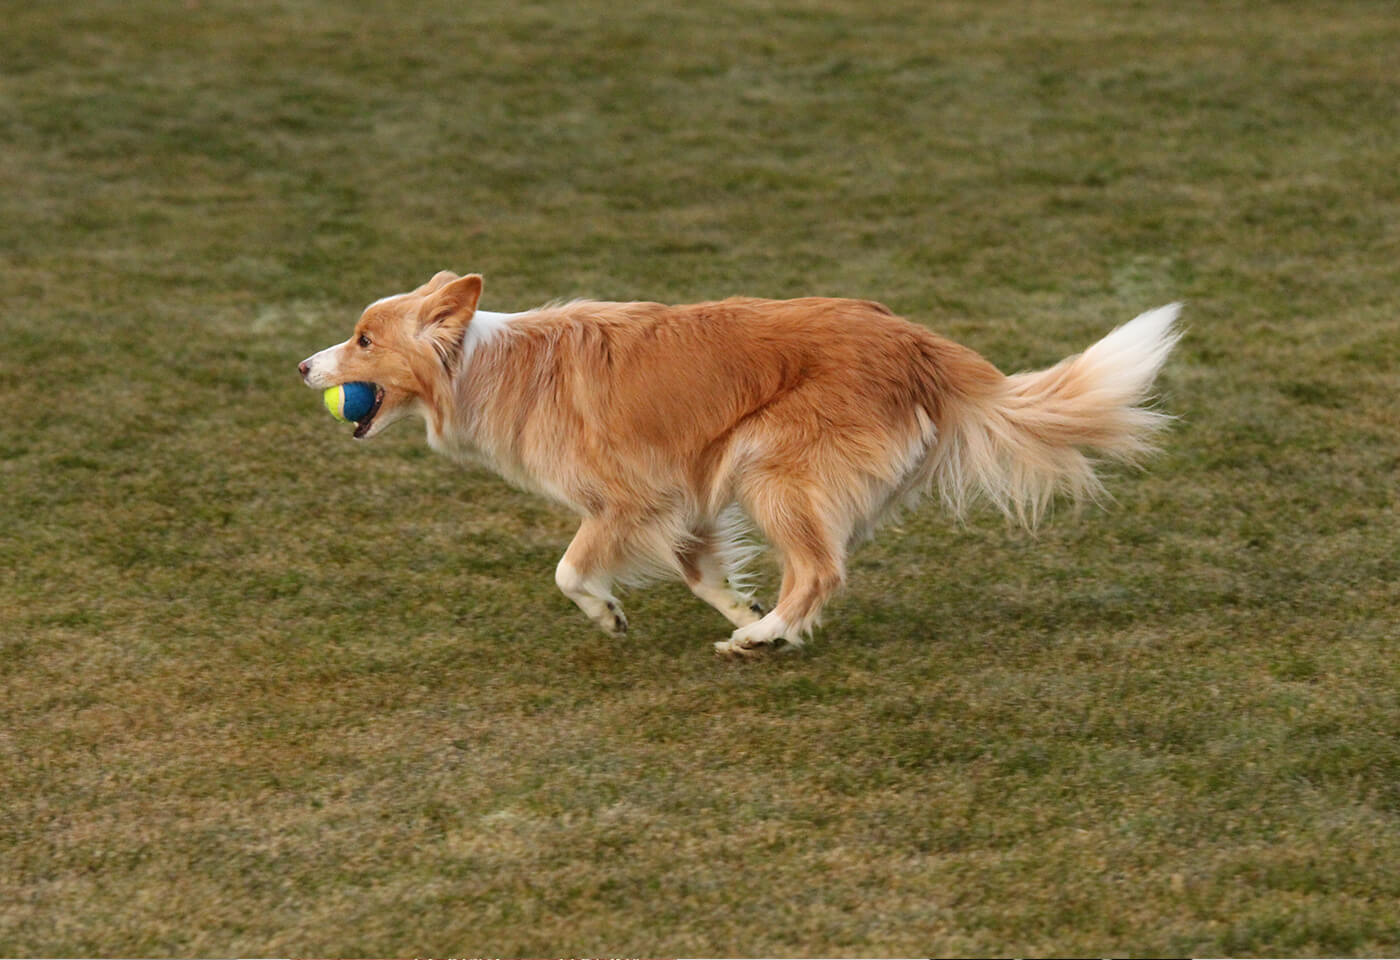 Dog with ball in mouth taken with Canon EOS 700D DSLR camera